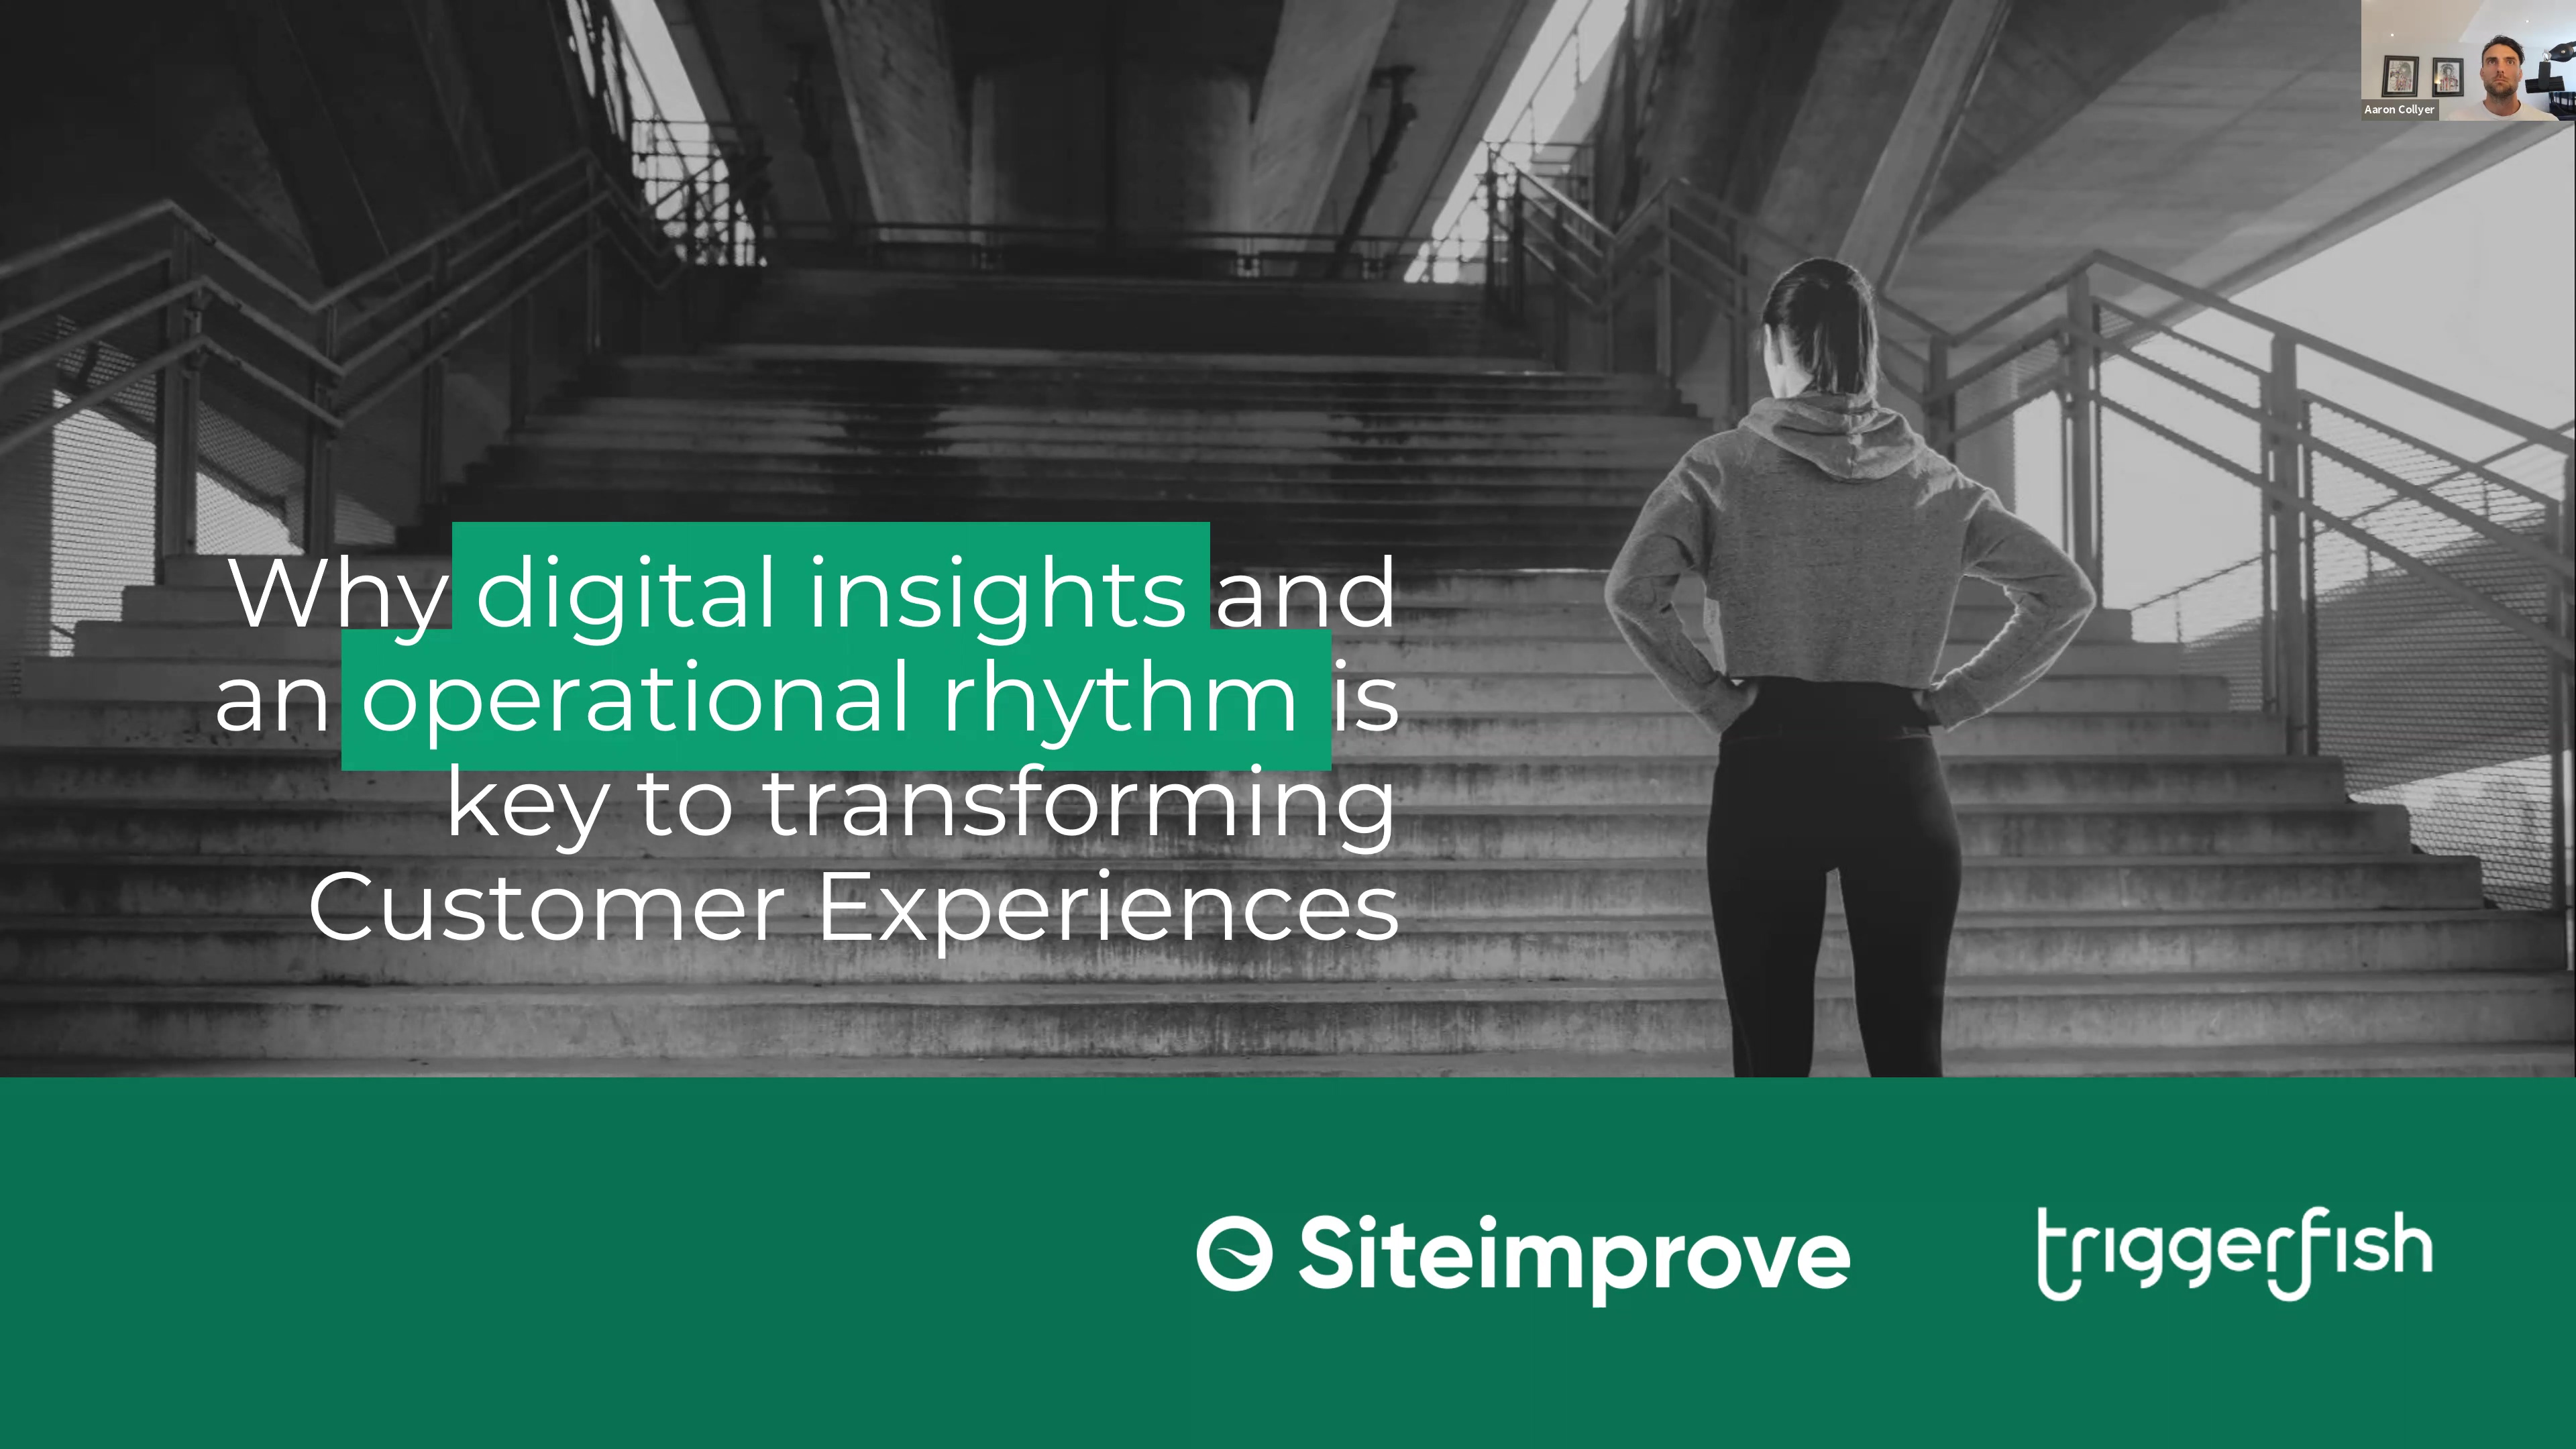 Automate digital insights with Siteimprove + Sitecore